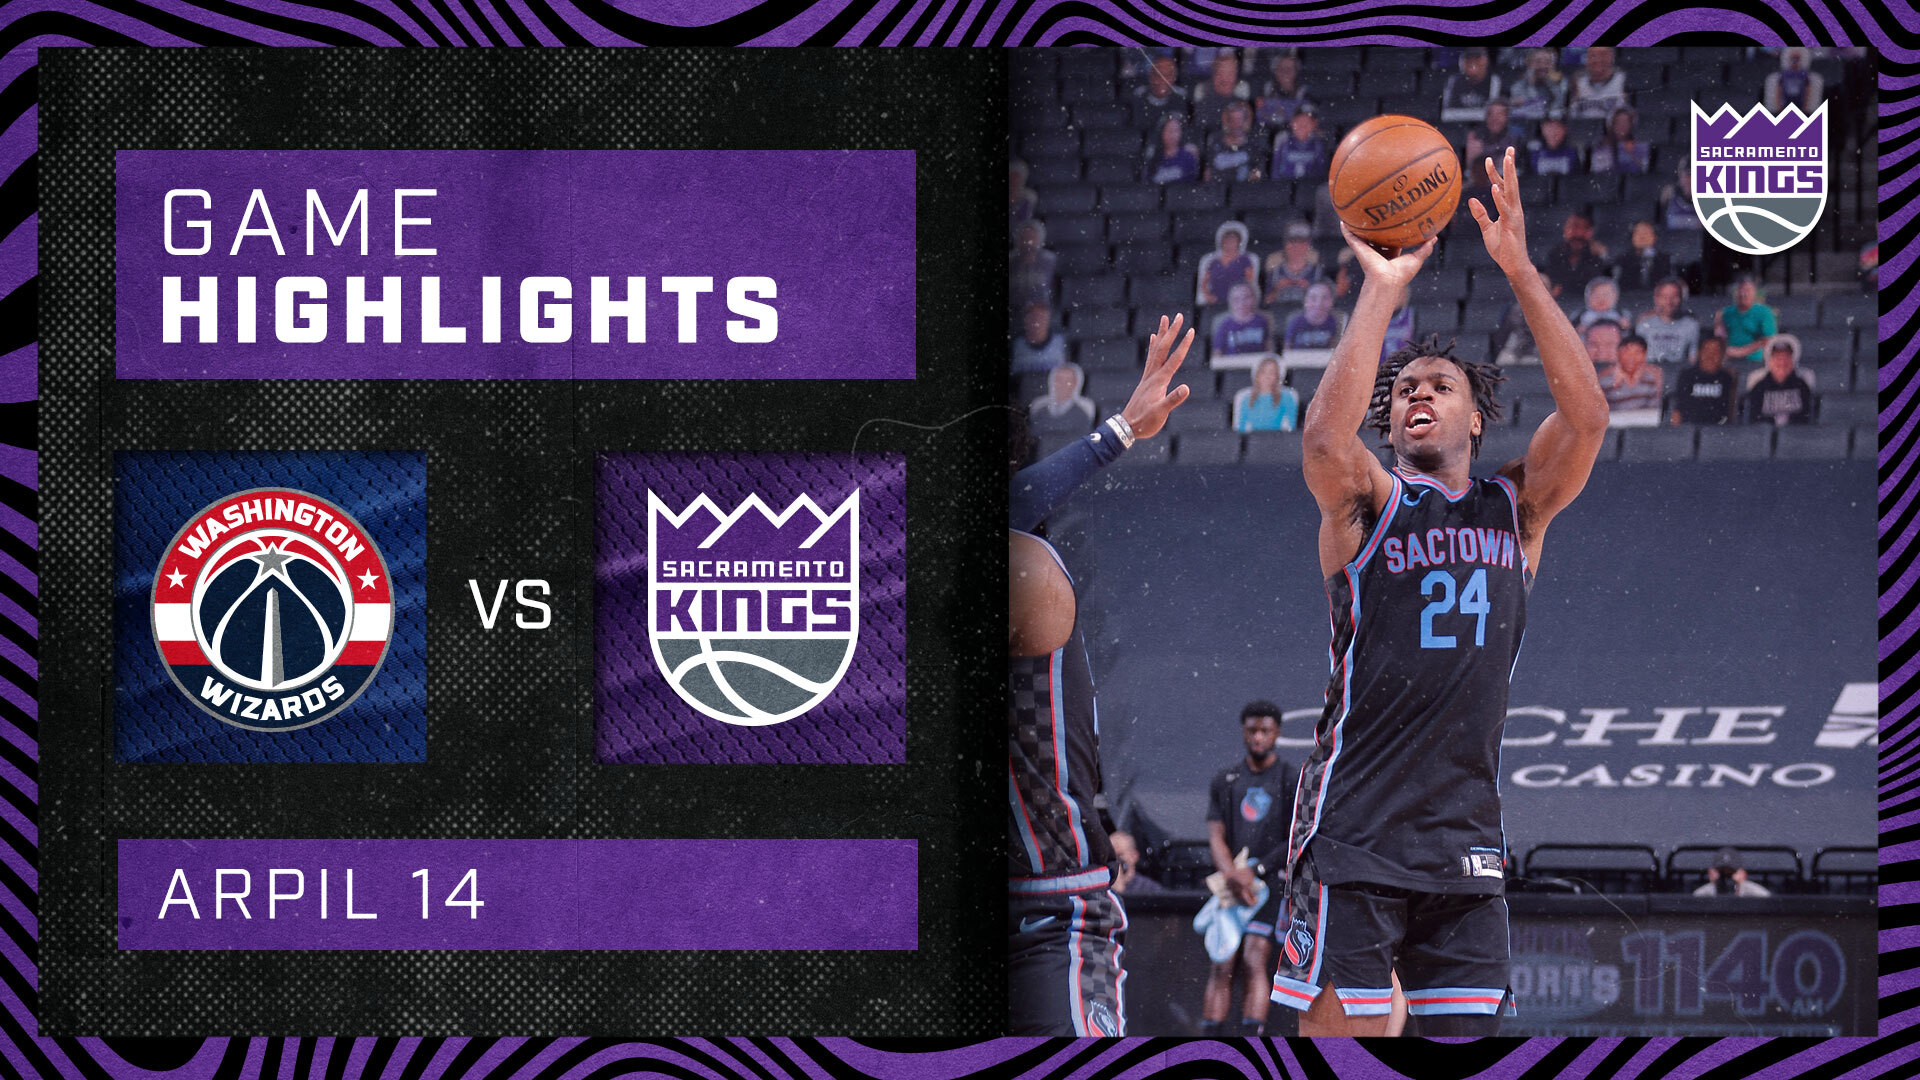 Capital BATTLE in Sactown | Kings vs Wizards 4.14.21